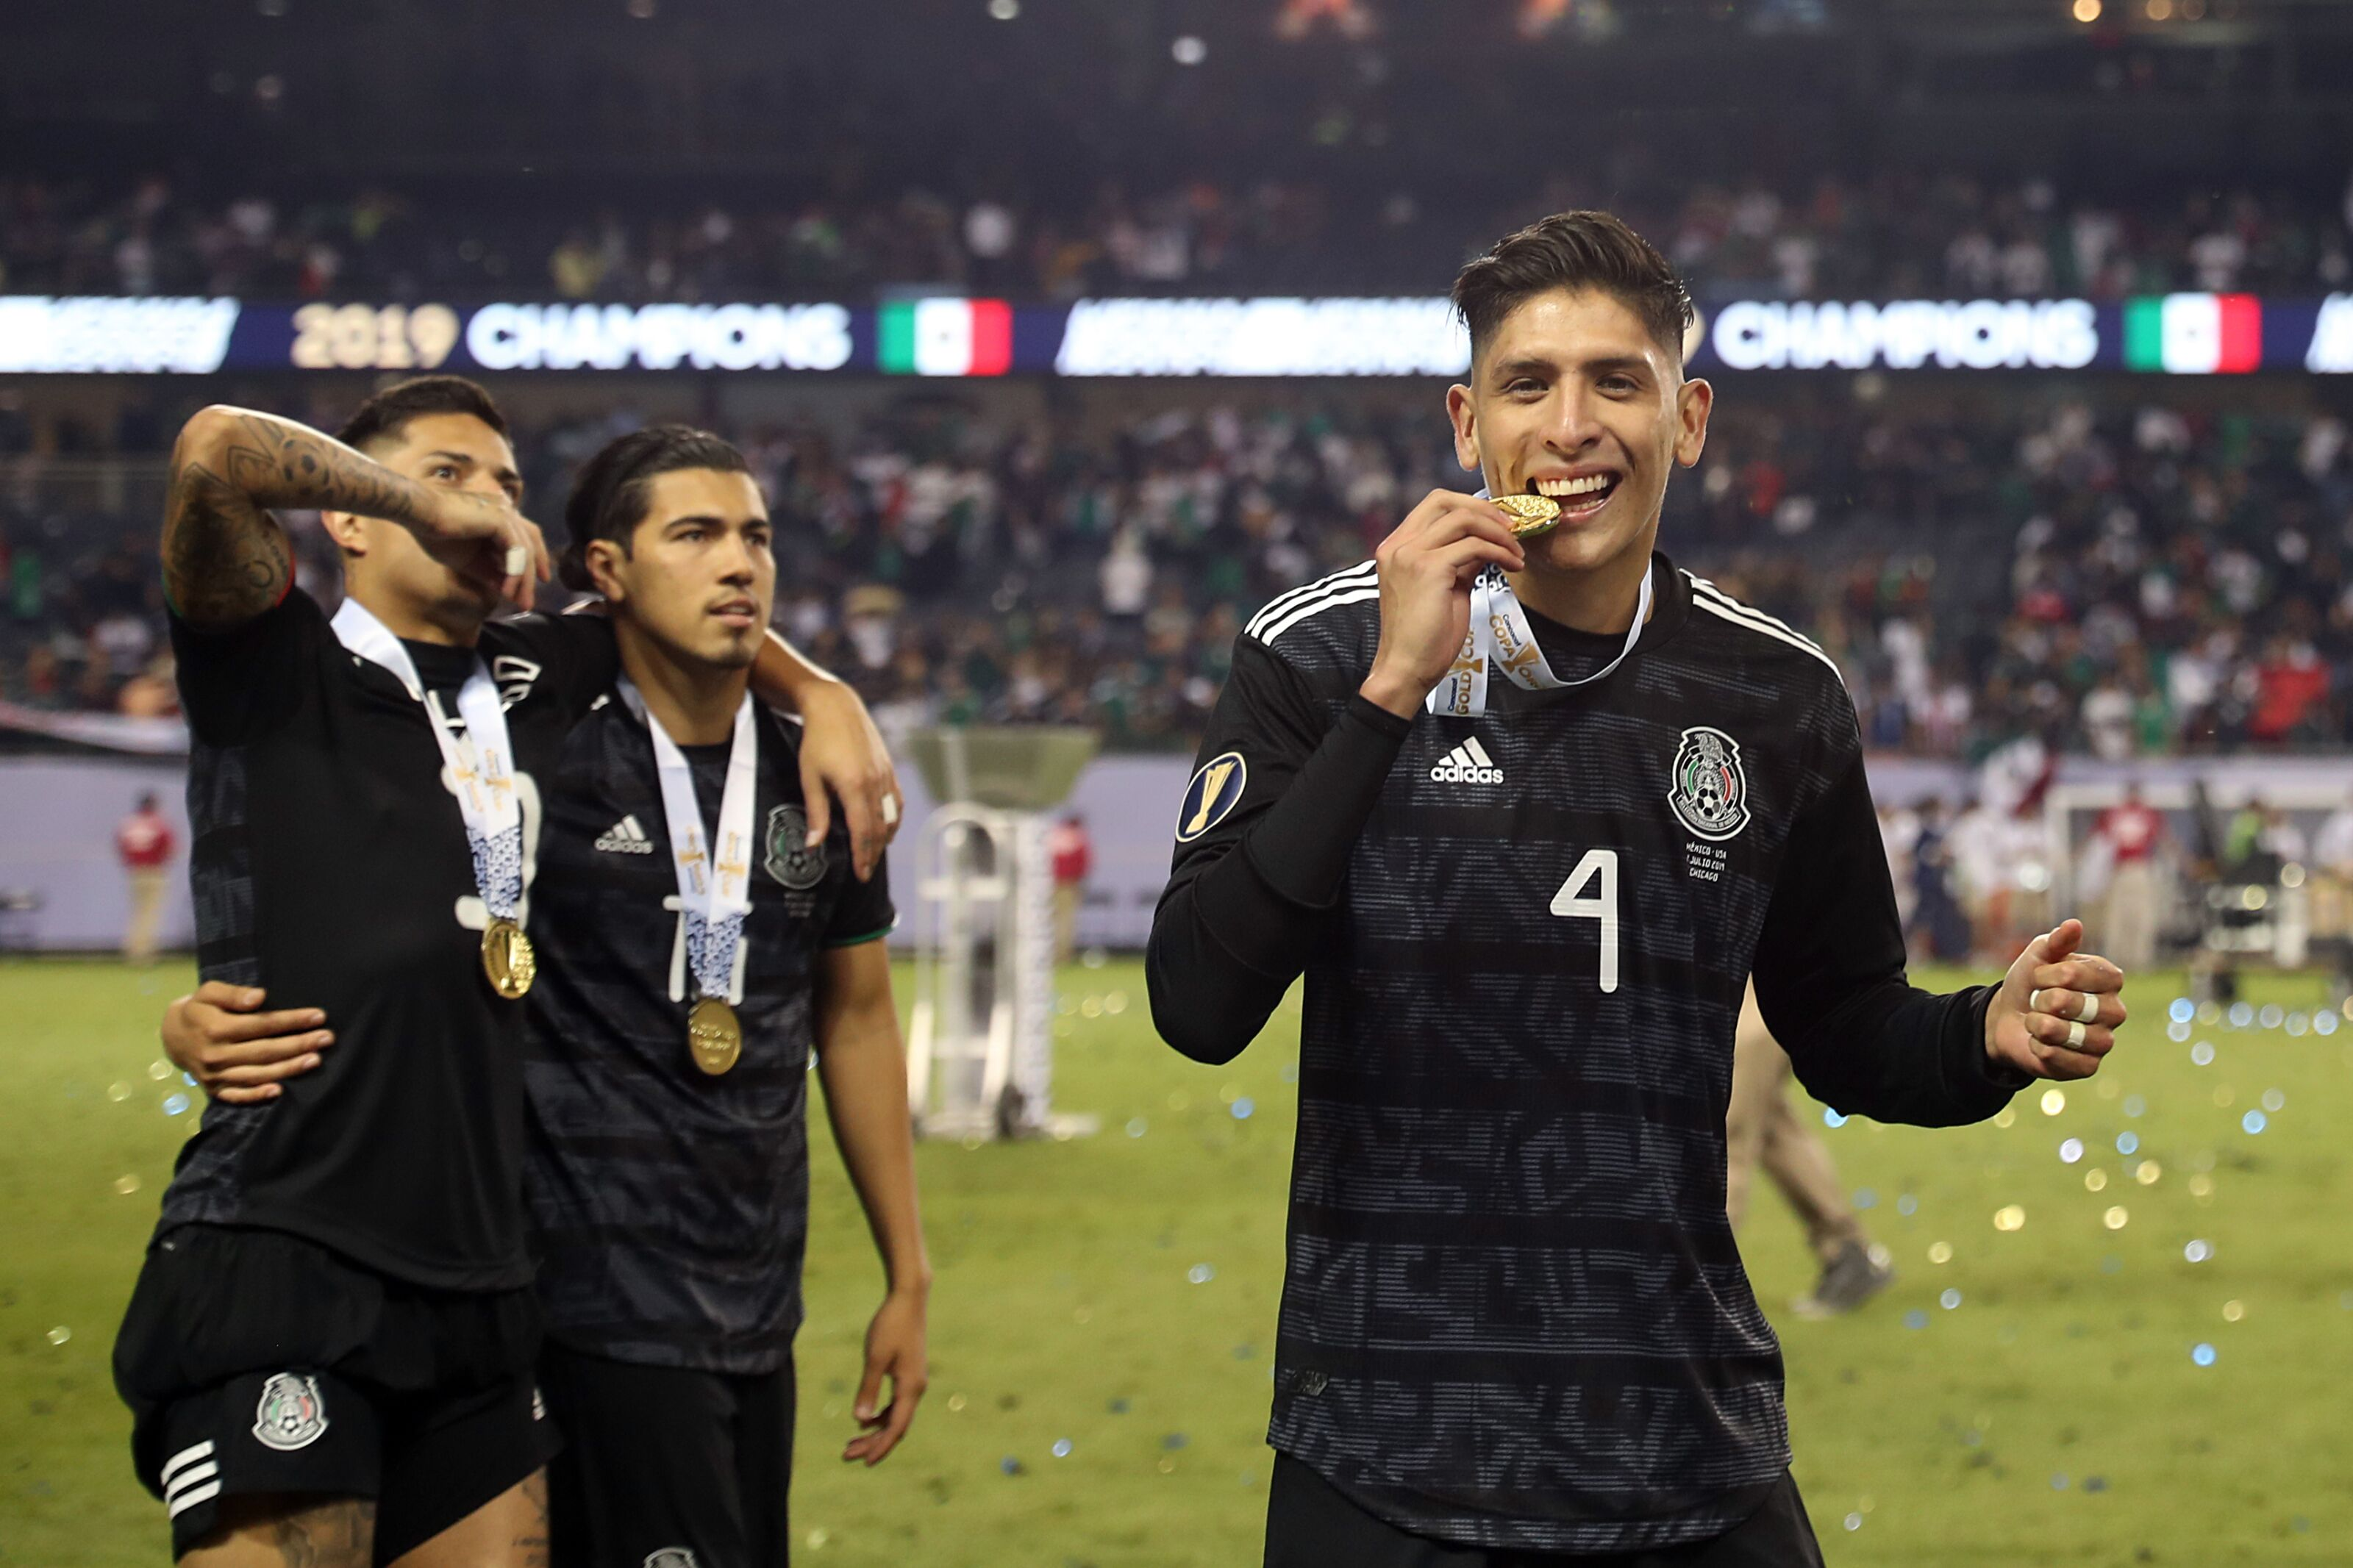 Odds and Ends as Apertura 2019 kickoff approaches in Mexico